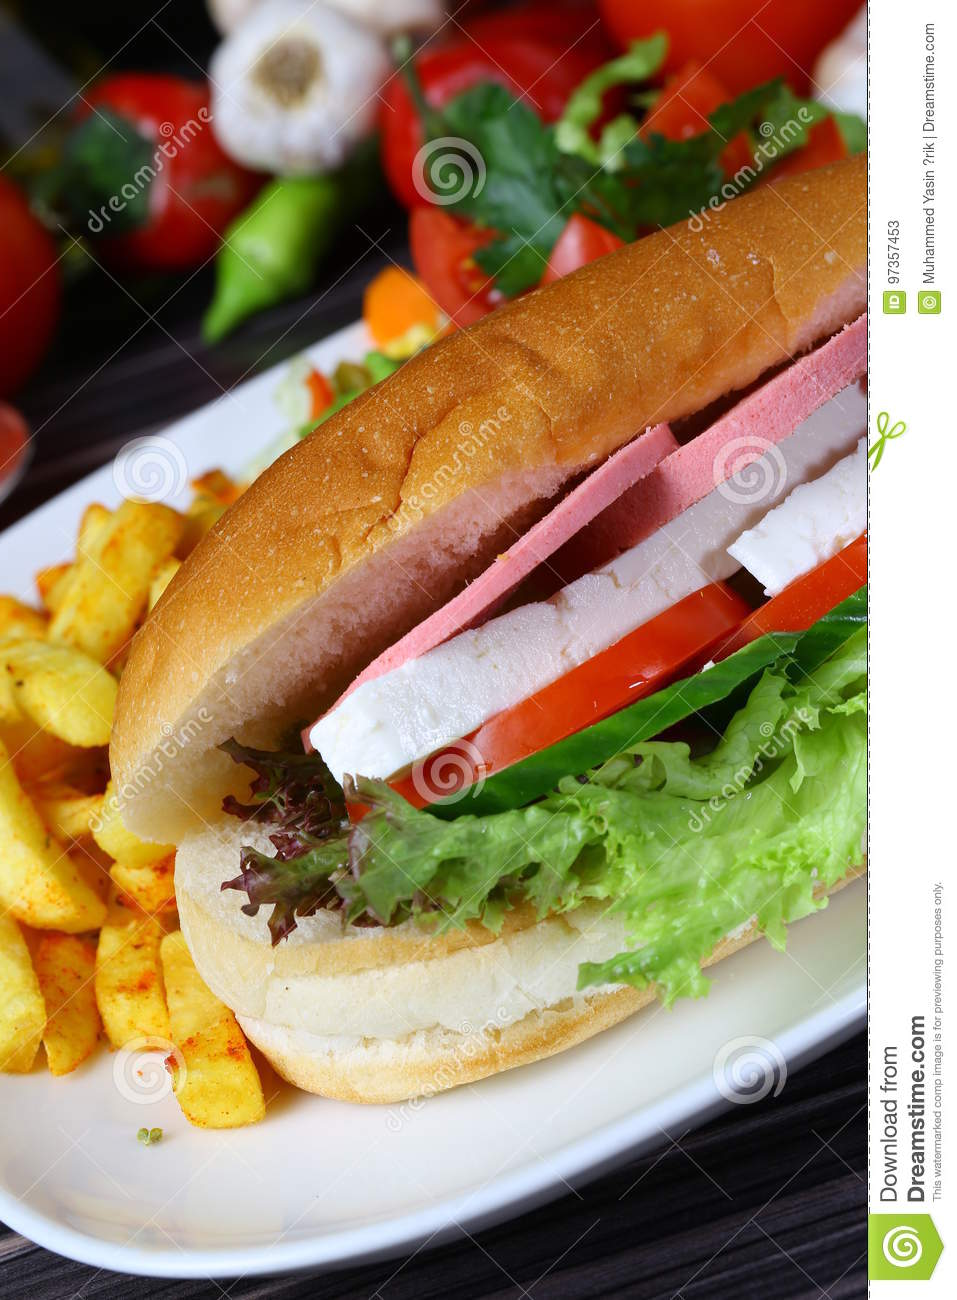 baguette sandwich with ham and cheese stock photo image 97357453. Black Bedroom Furniture Sets. Home Design Ideas